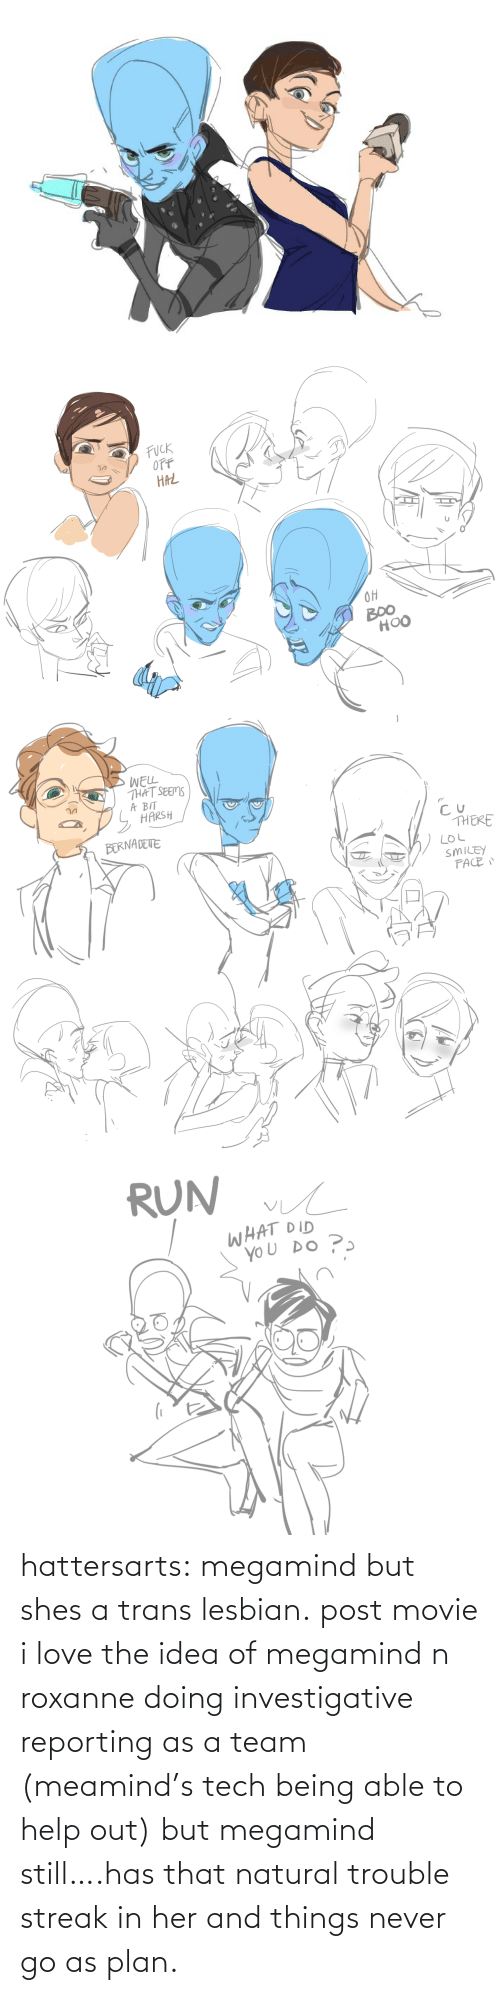 Able: hattersarts:  megamind but shes a trans lesbian.  post movie i love the idea of megamind n roxanne doing investigative reporting as a team (meamind's tech being able to help out) but megamind still….has that natural trouble streak in her and things never go as plan.